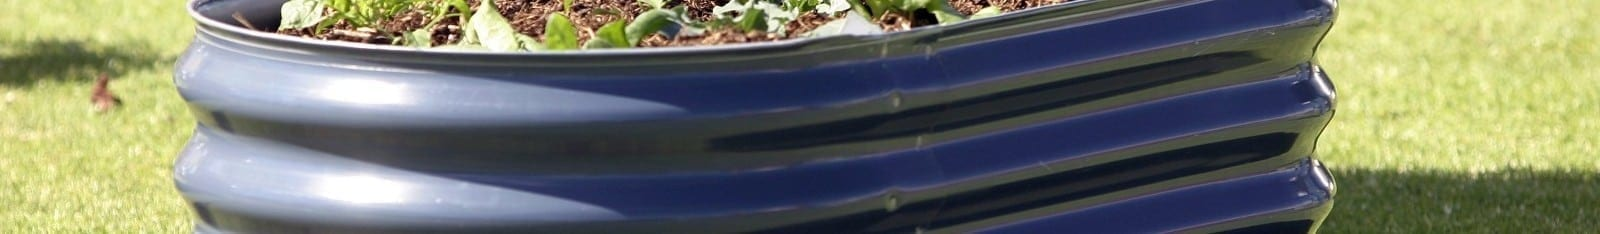 Protecting Your Rainwater Tank from Mosquitoes